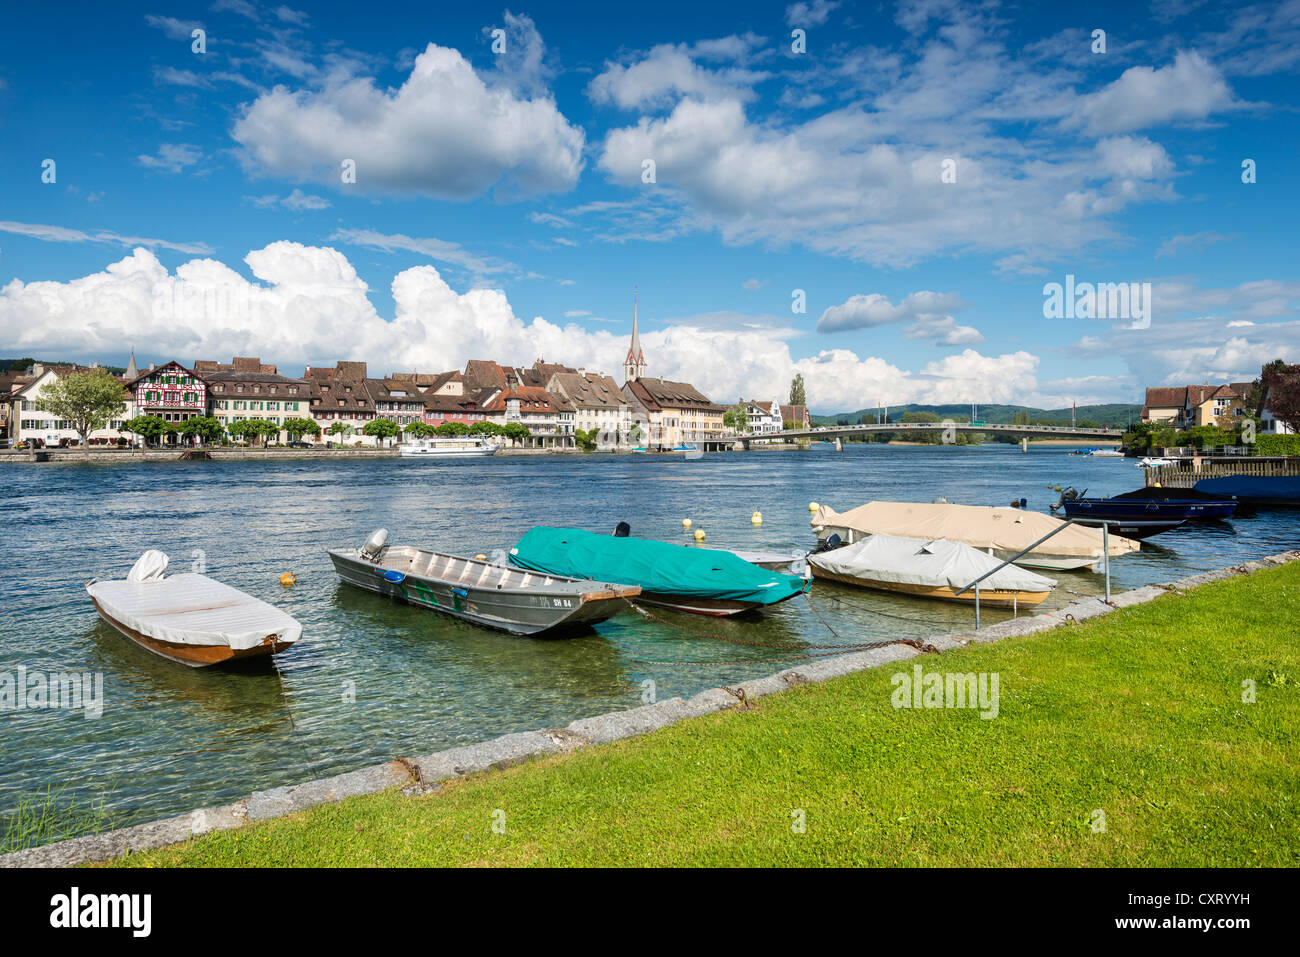 View across the Rhine to the old town of Stein am Rhein with moored boats, Canton Schaffhausen, Switzerland, Europe - Stock Image